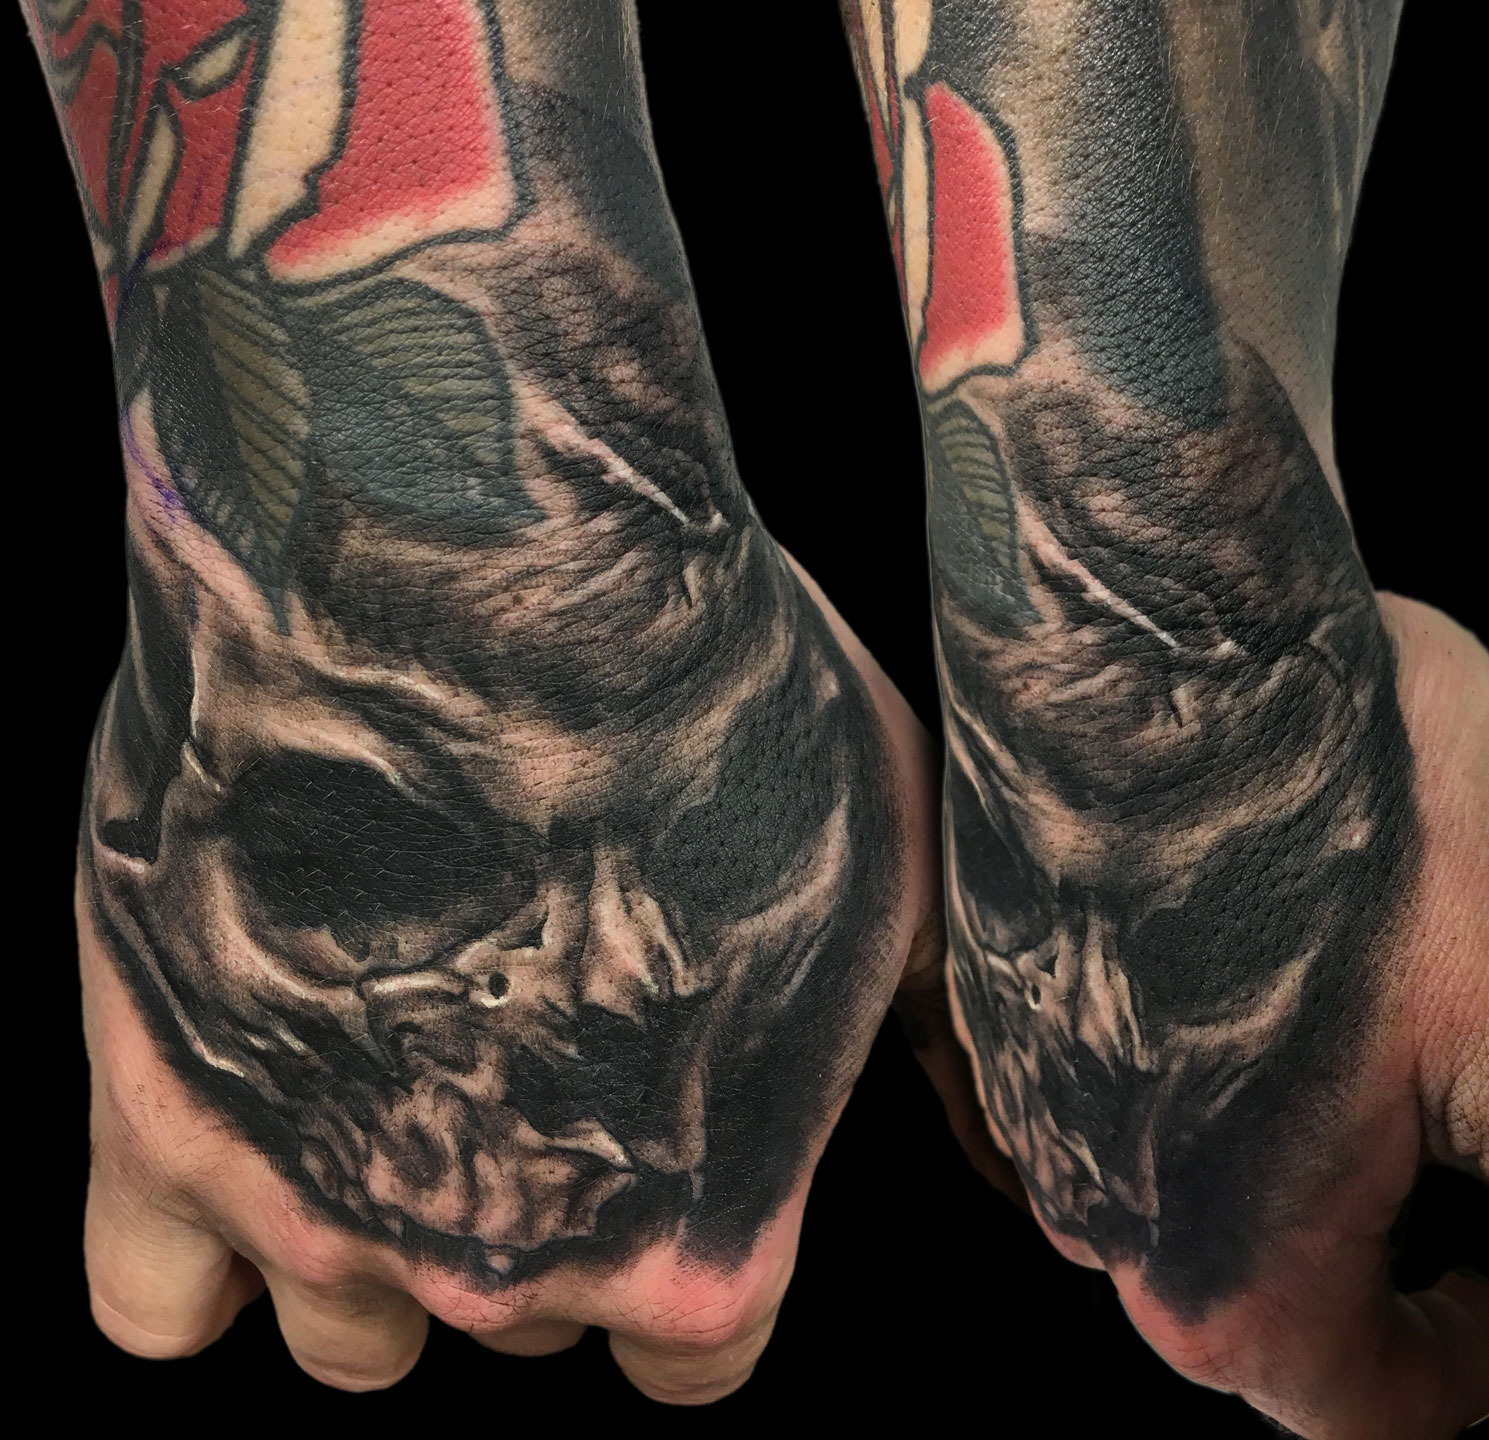 Black and Grey Coffee Bean Brain Skull Tattoo, (fresh) on hand